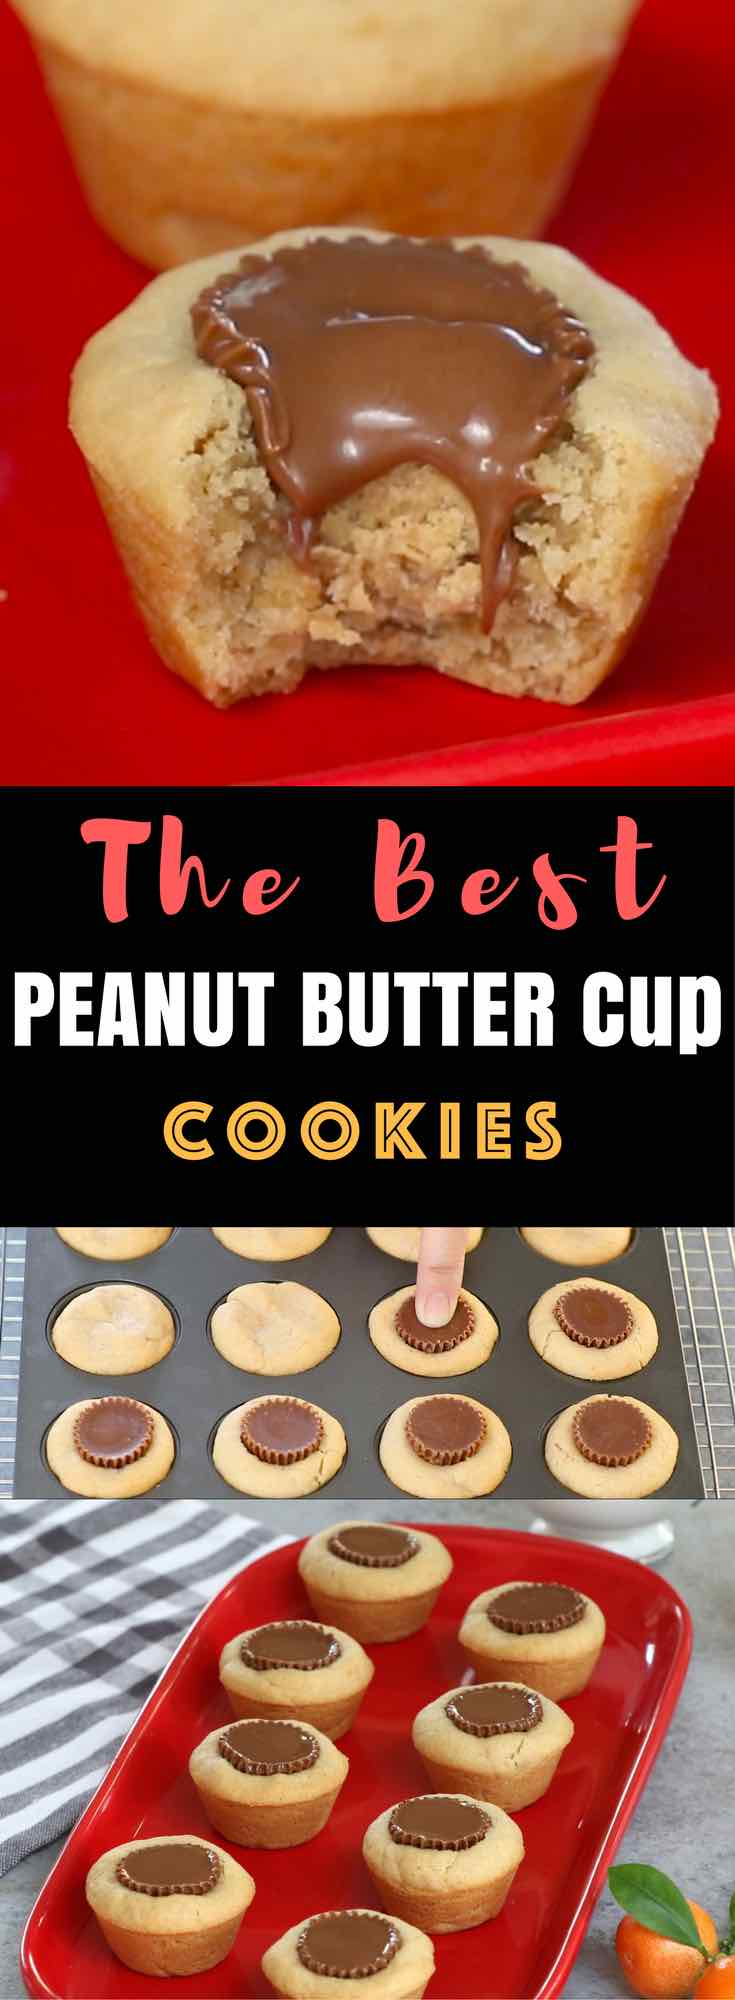 Peanut Butter Cup Cookies –Unbelievably delicious desserts or snacks recipe that's fool proof. Miniature Reese's peanut butter cups stuffed inside soft and chewy cookie cups, creating a wonderful cookie cups that melt in your mouth. All you need is only a few simple ingredients. Fun recipe to make with kids. Quick and Easy recipe that takes only 25 minutes. Dessert, Party Food. Vegetarian. Video recipe. | Tipbuzz.com